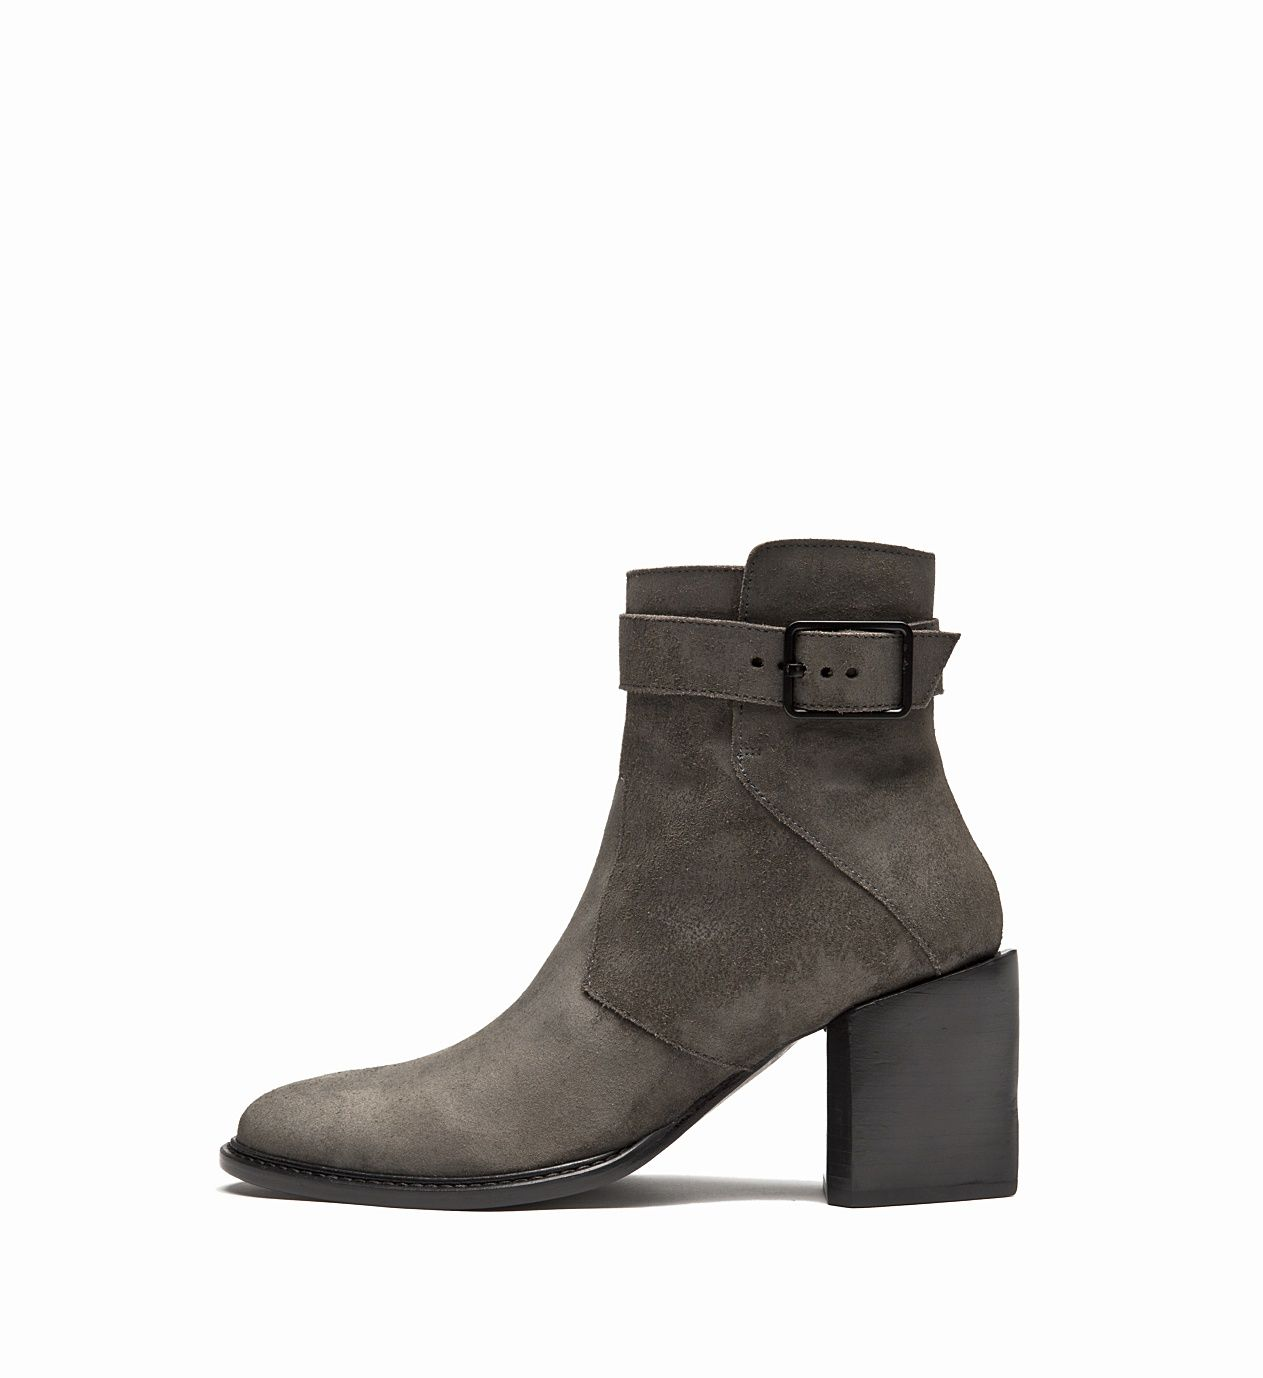 HELMUT LANG _ OILED SUEDE BUCKLE BOOT